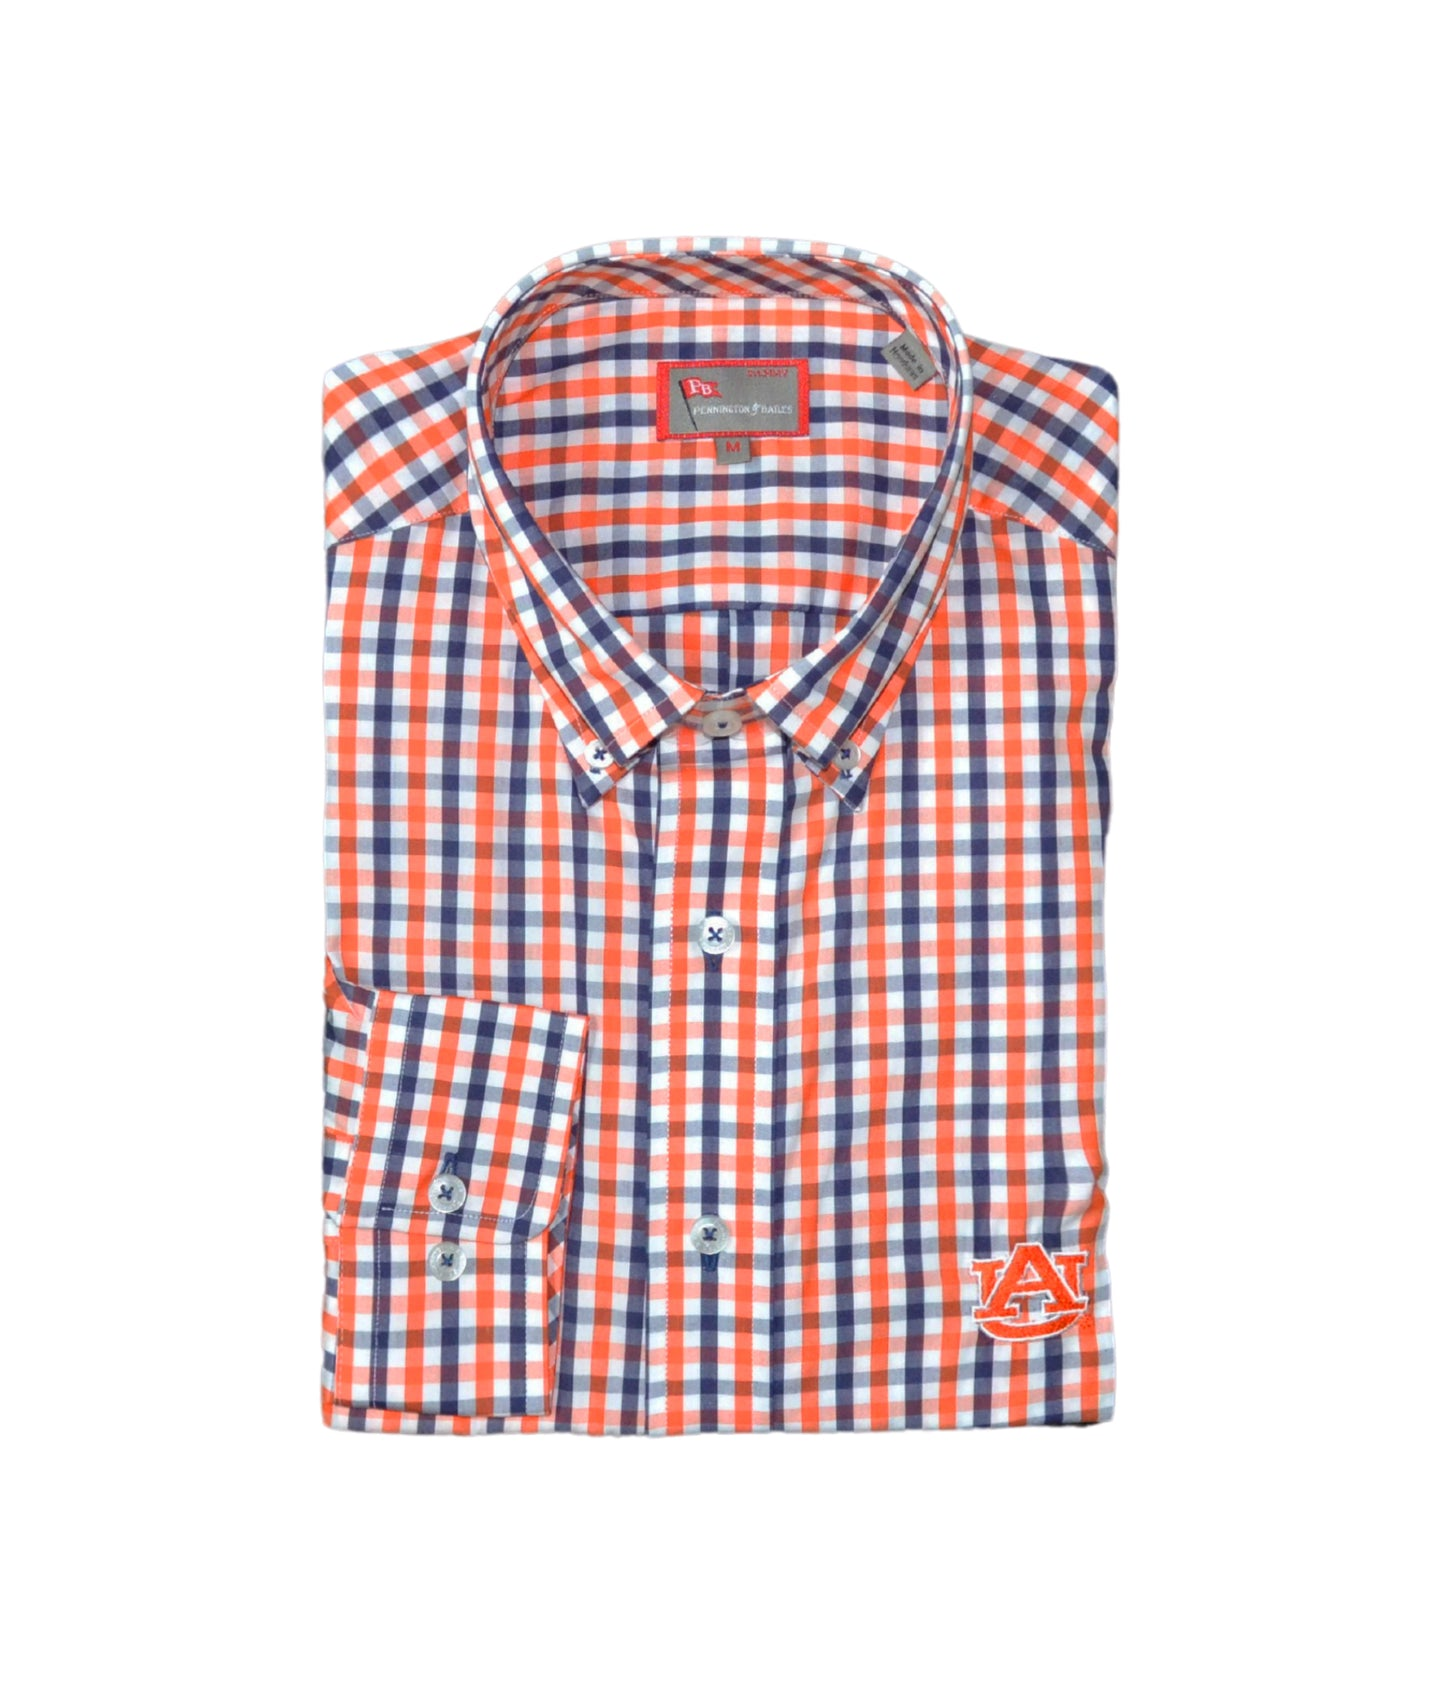 Auburn Men's Gingham Shirt